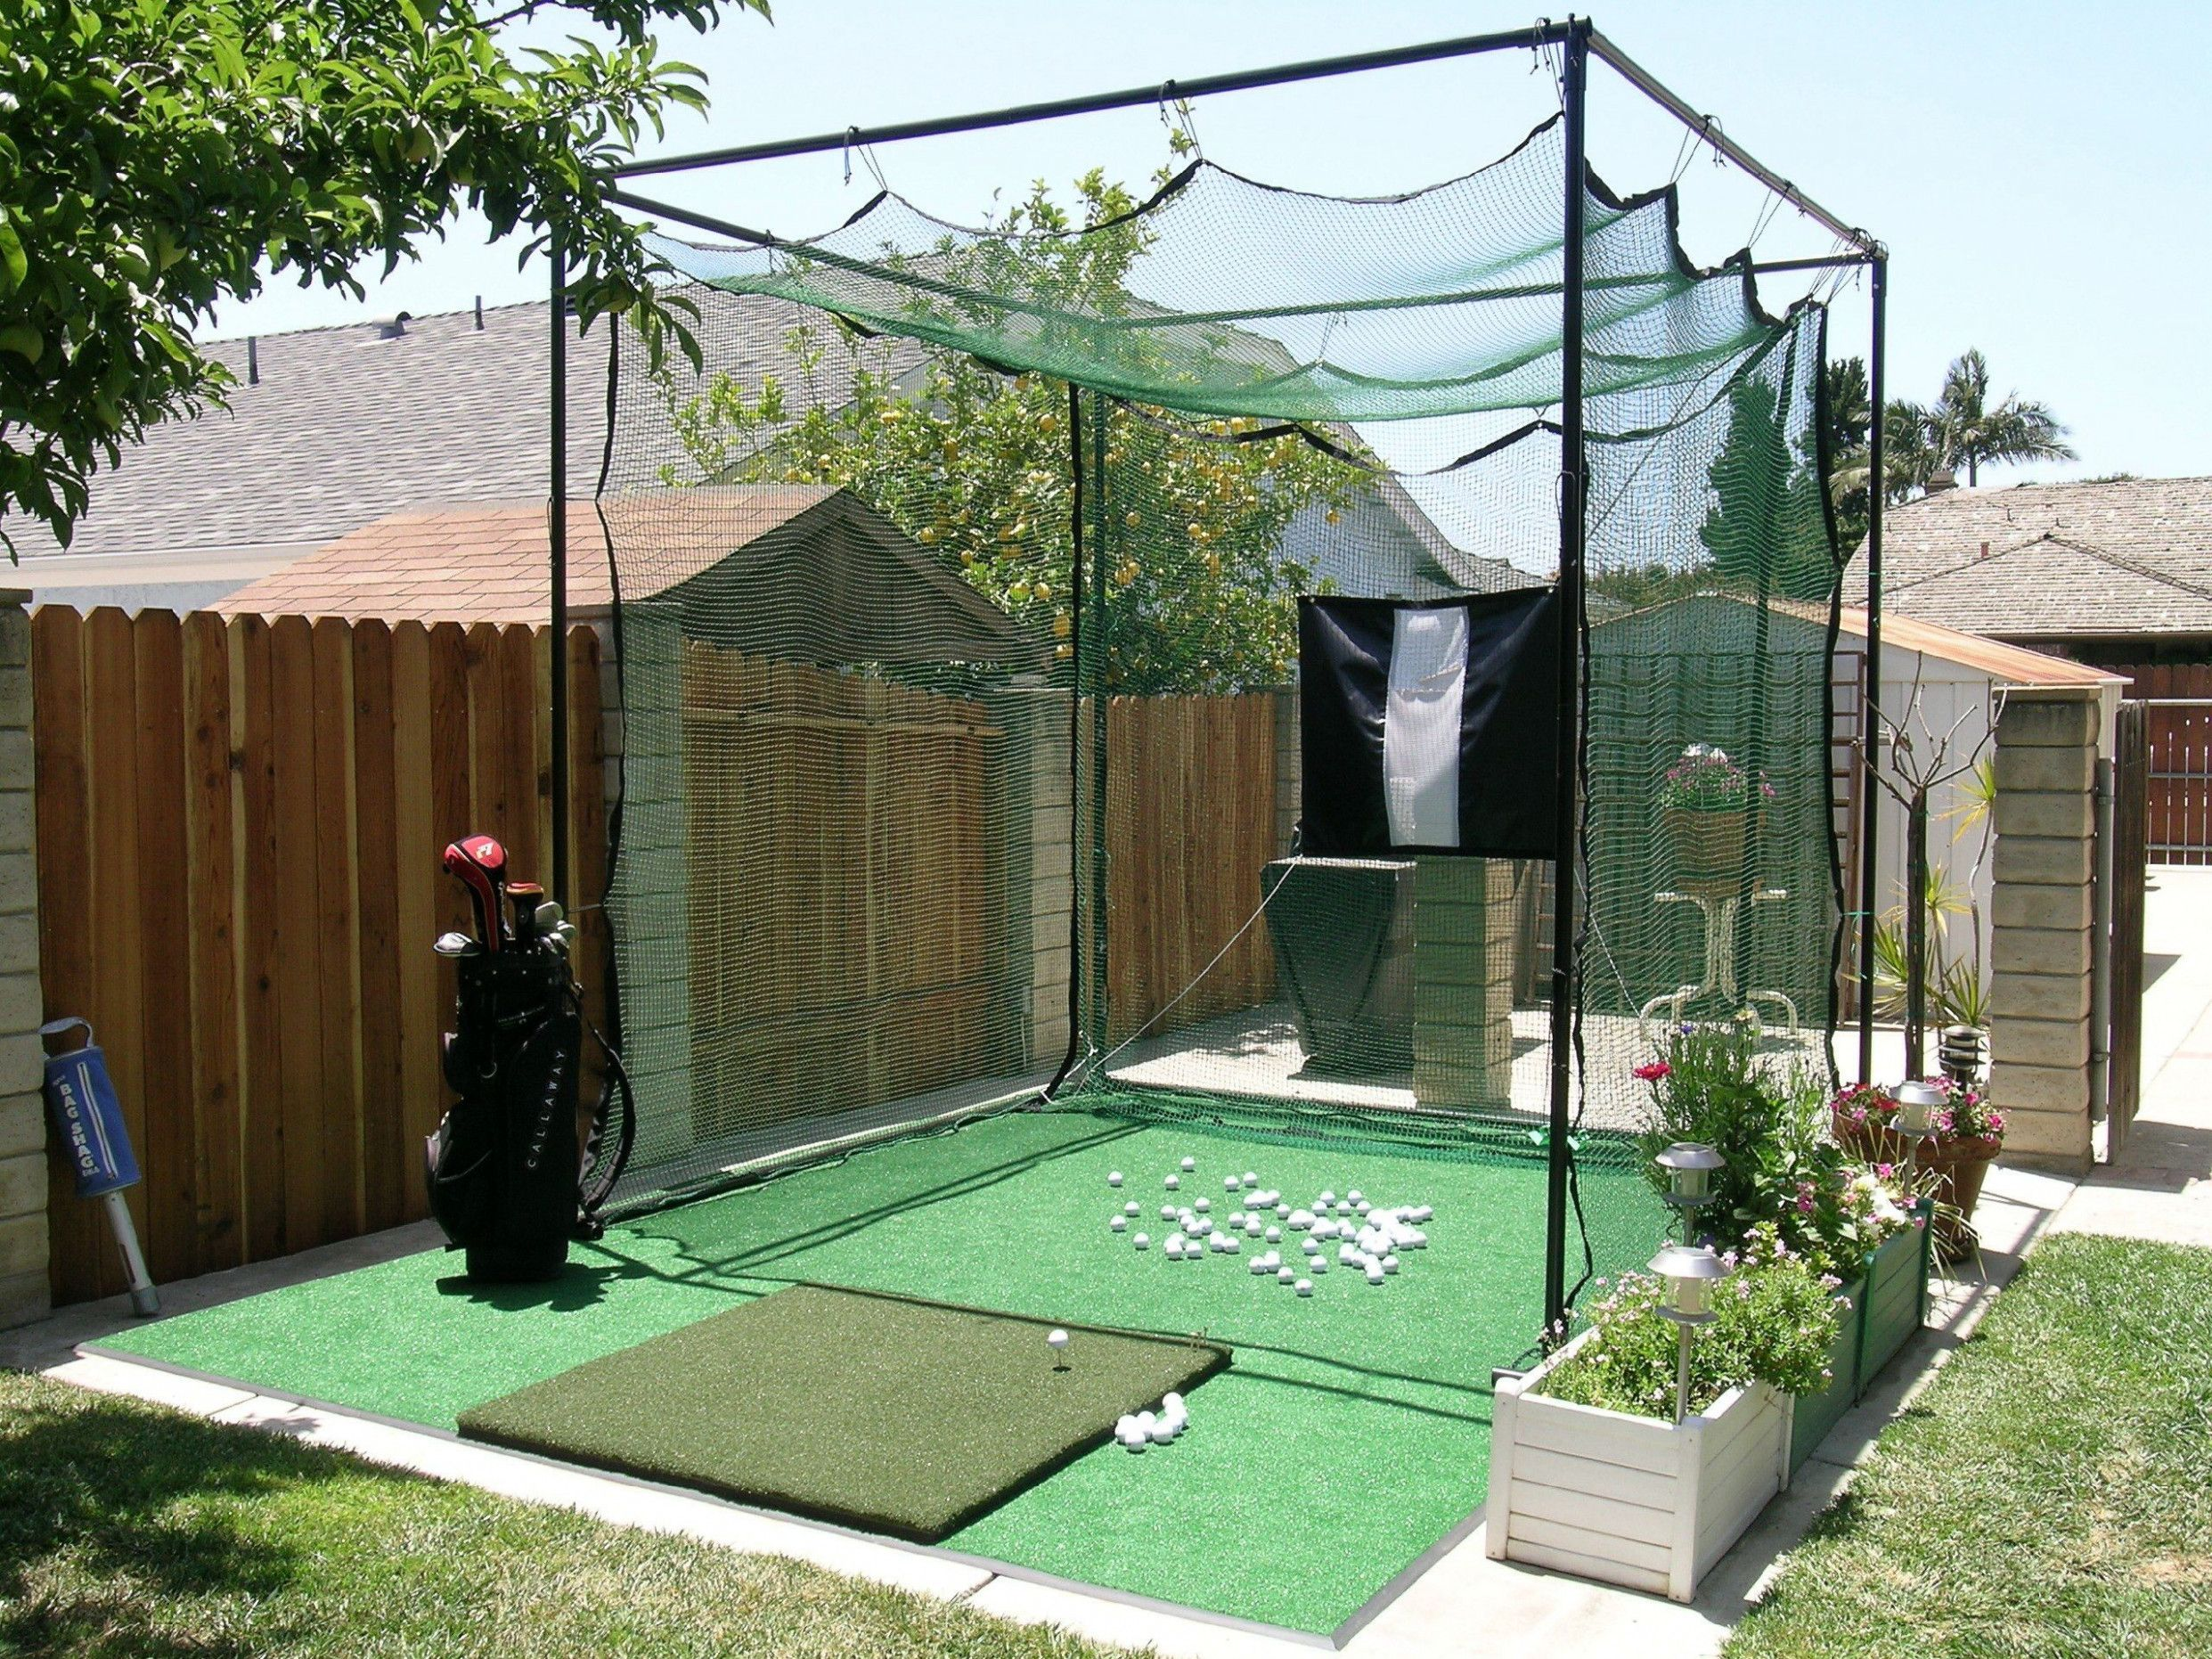 Wonderful How To Make in 2020 (With images) | Batting cage ...